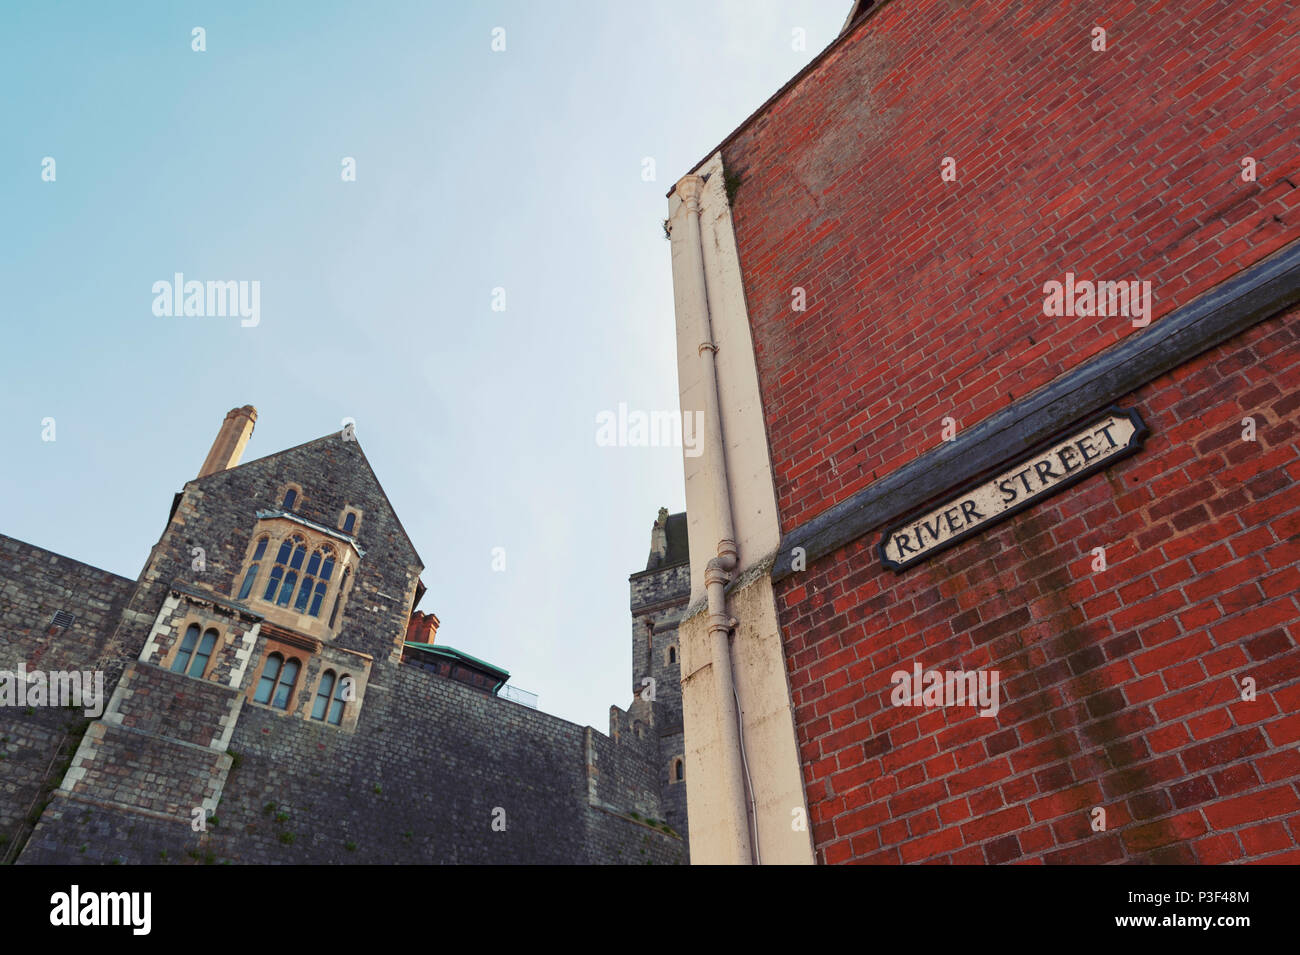 Corner Of Berkshire.Low Angle Shot Of Ancient Stone Buildings And Red Brick Wall